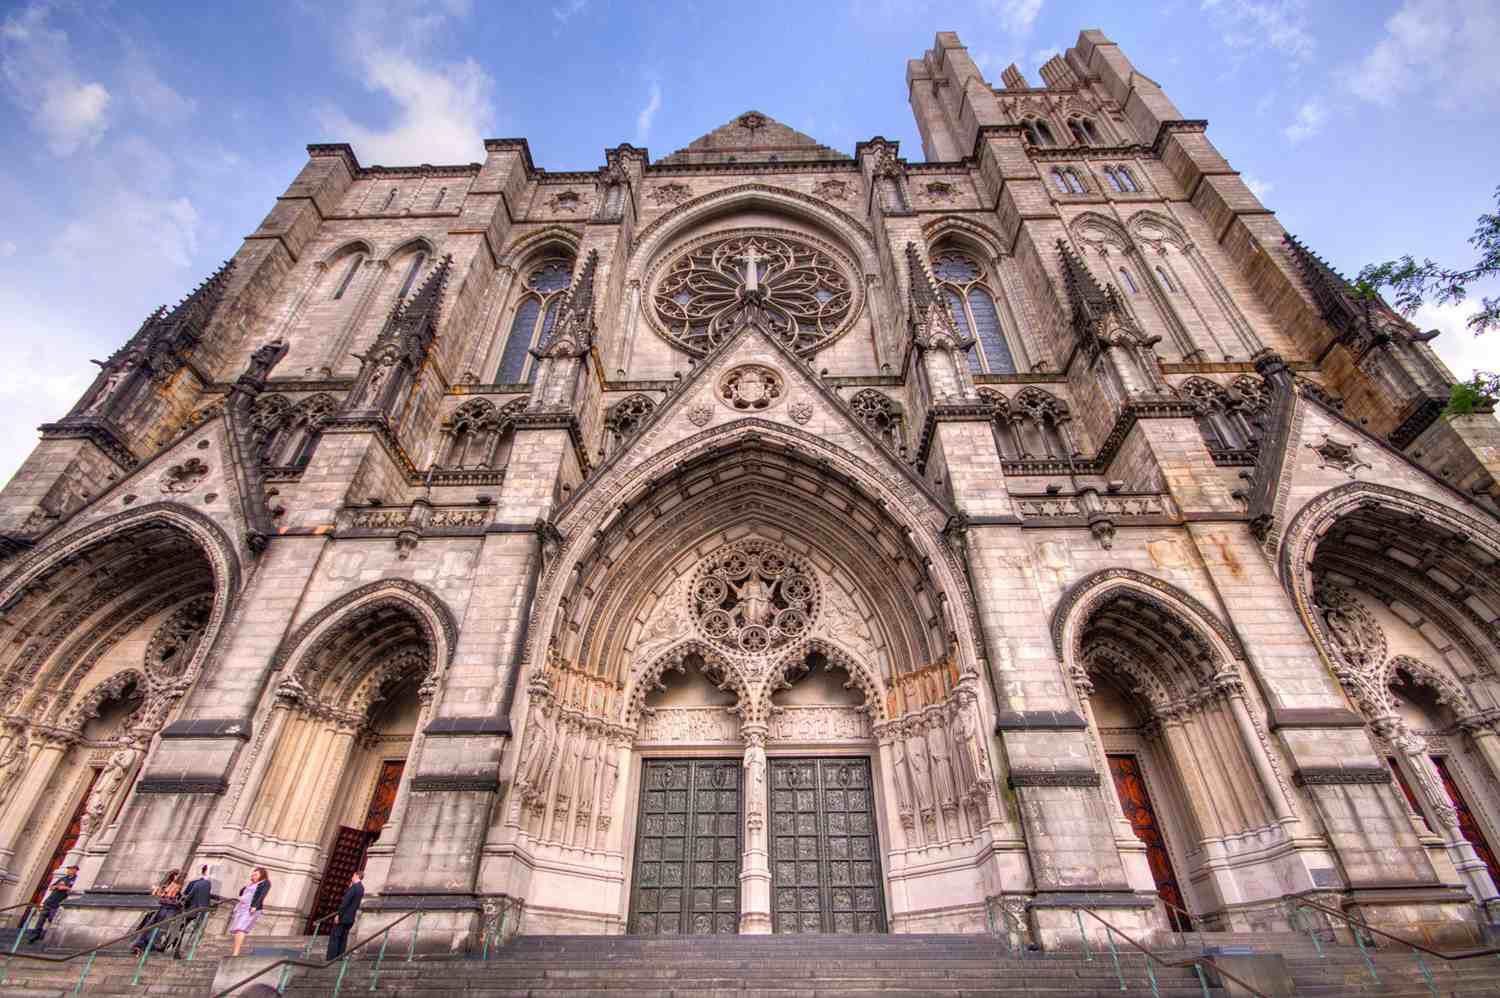 The Cathedral of St. John